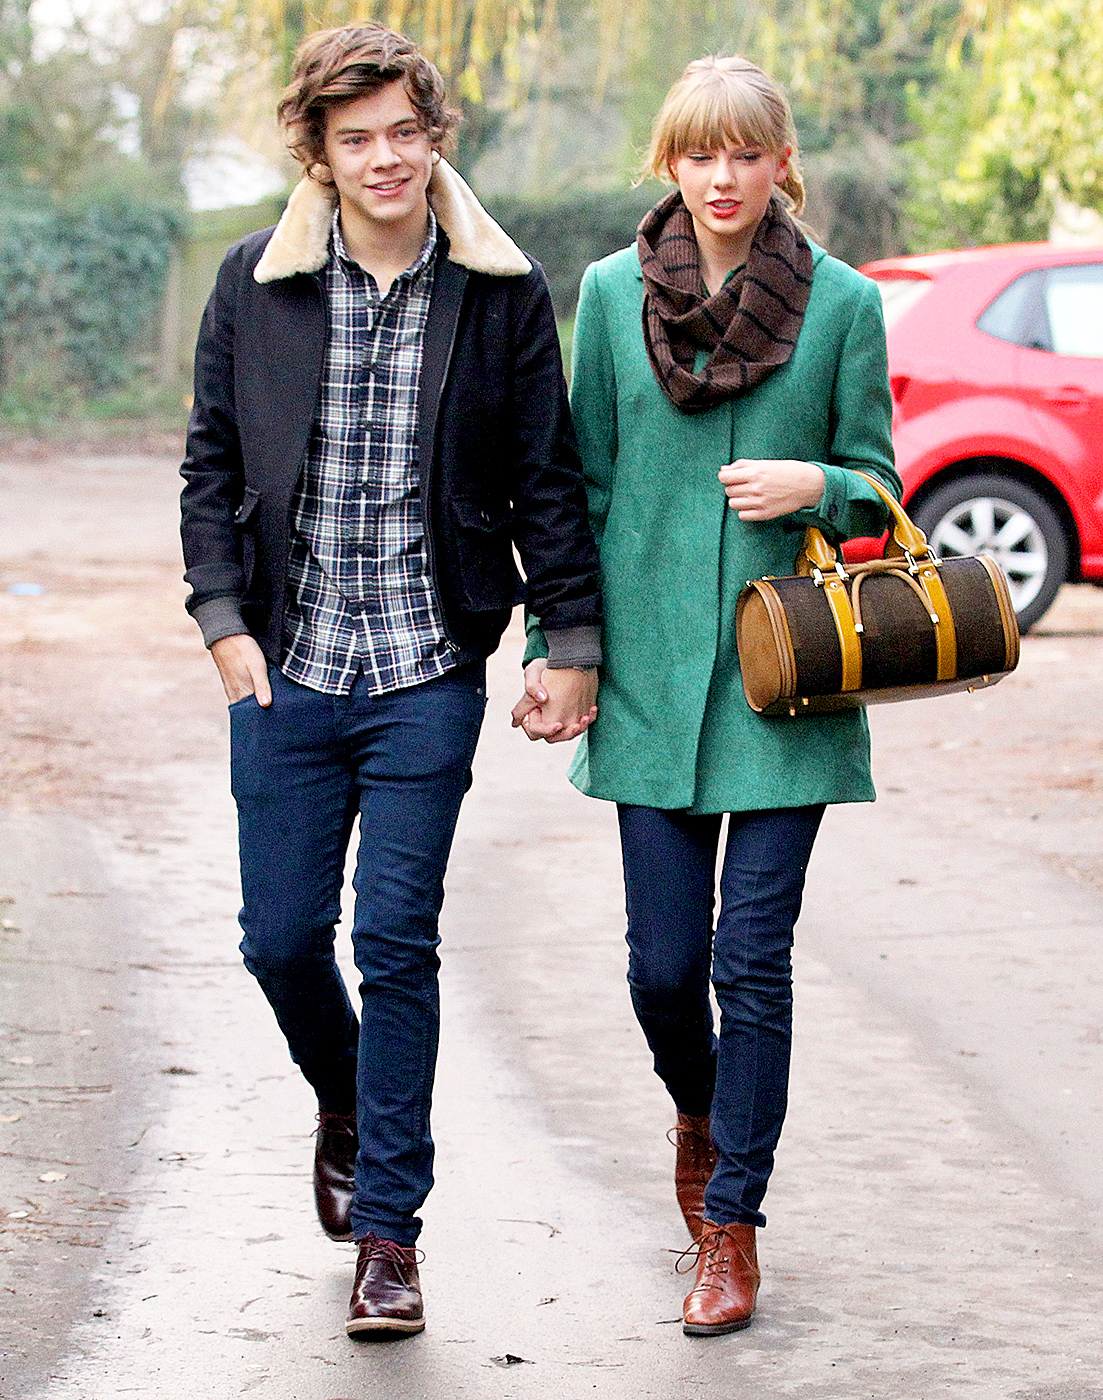 After months of speculation, the One Direction heartthrob was first spotted out with Swift at the Central Park Zoo in December 2012. The romance was short-lived, as a blow-up fight during a holiday getaway led to a split in early 2013 .